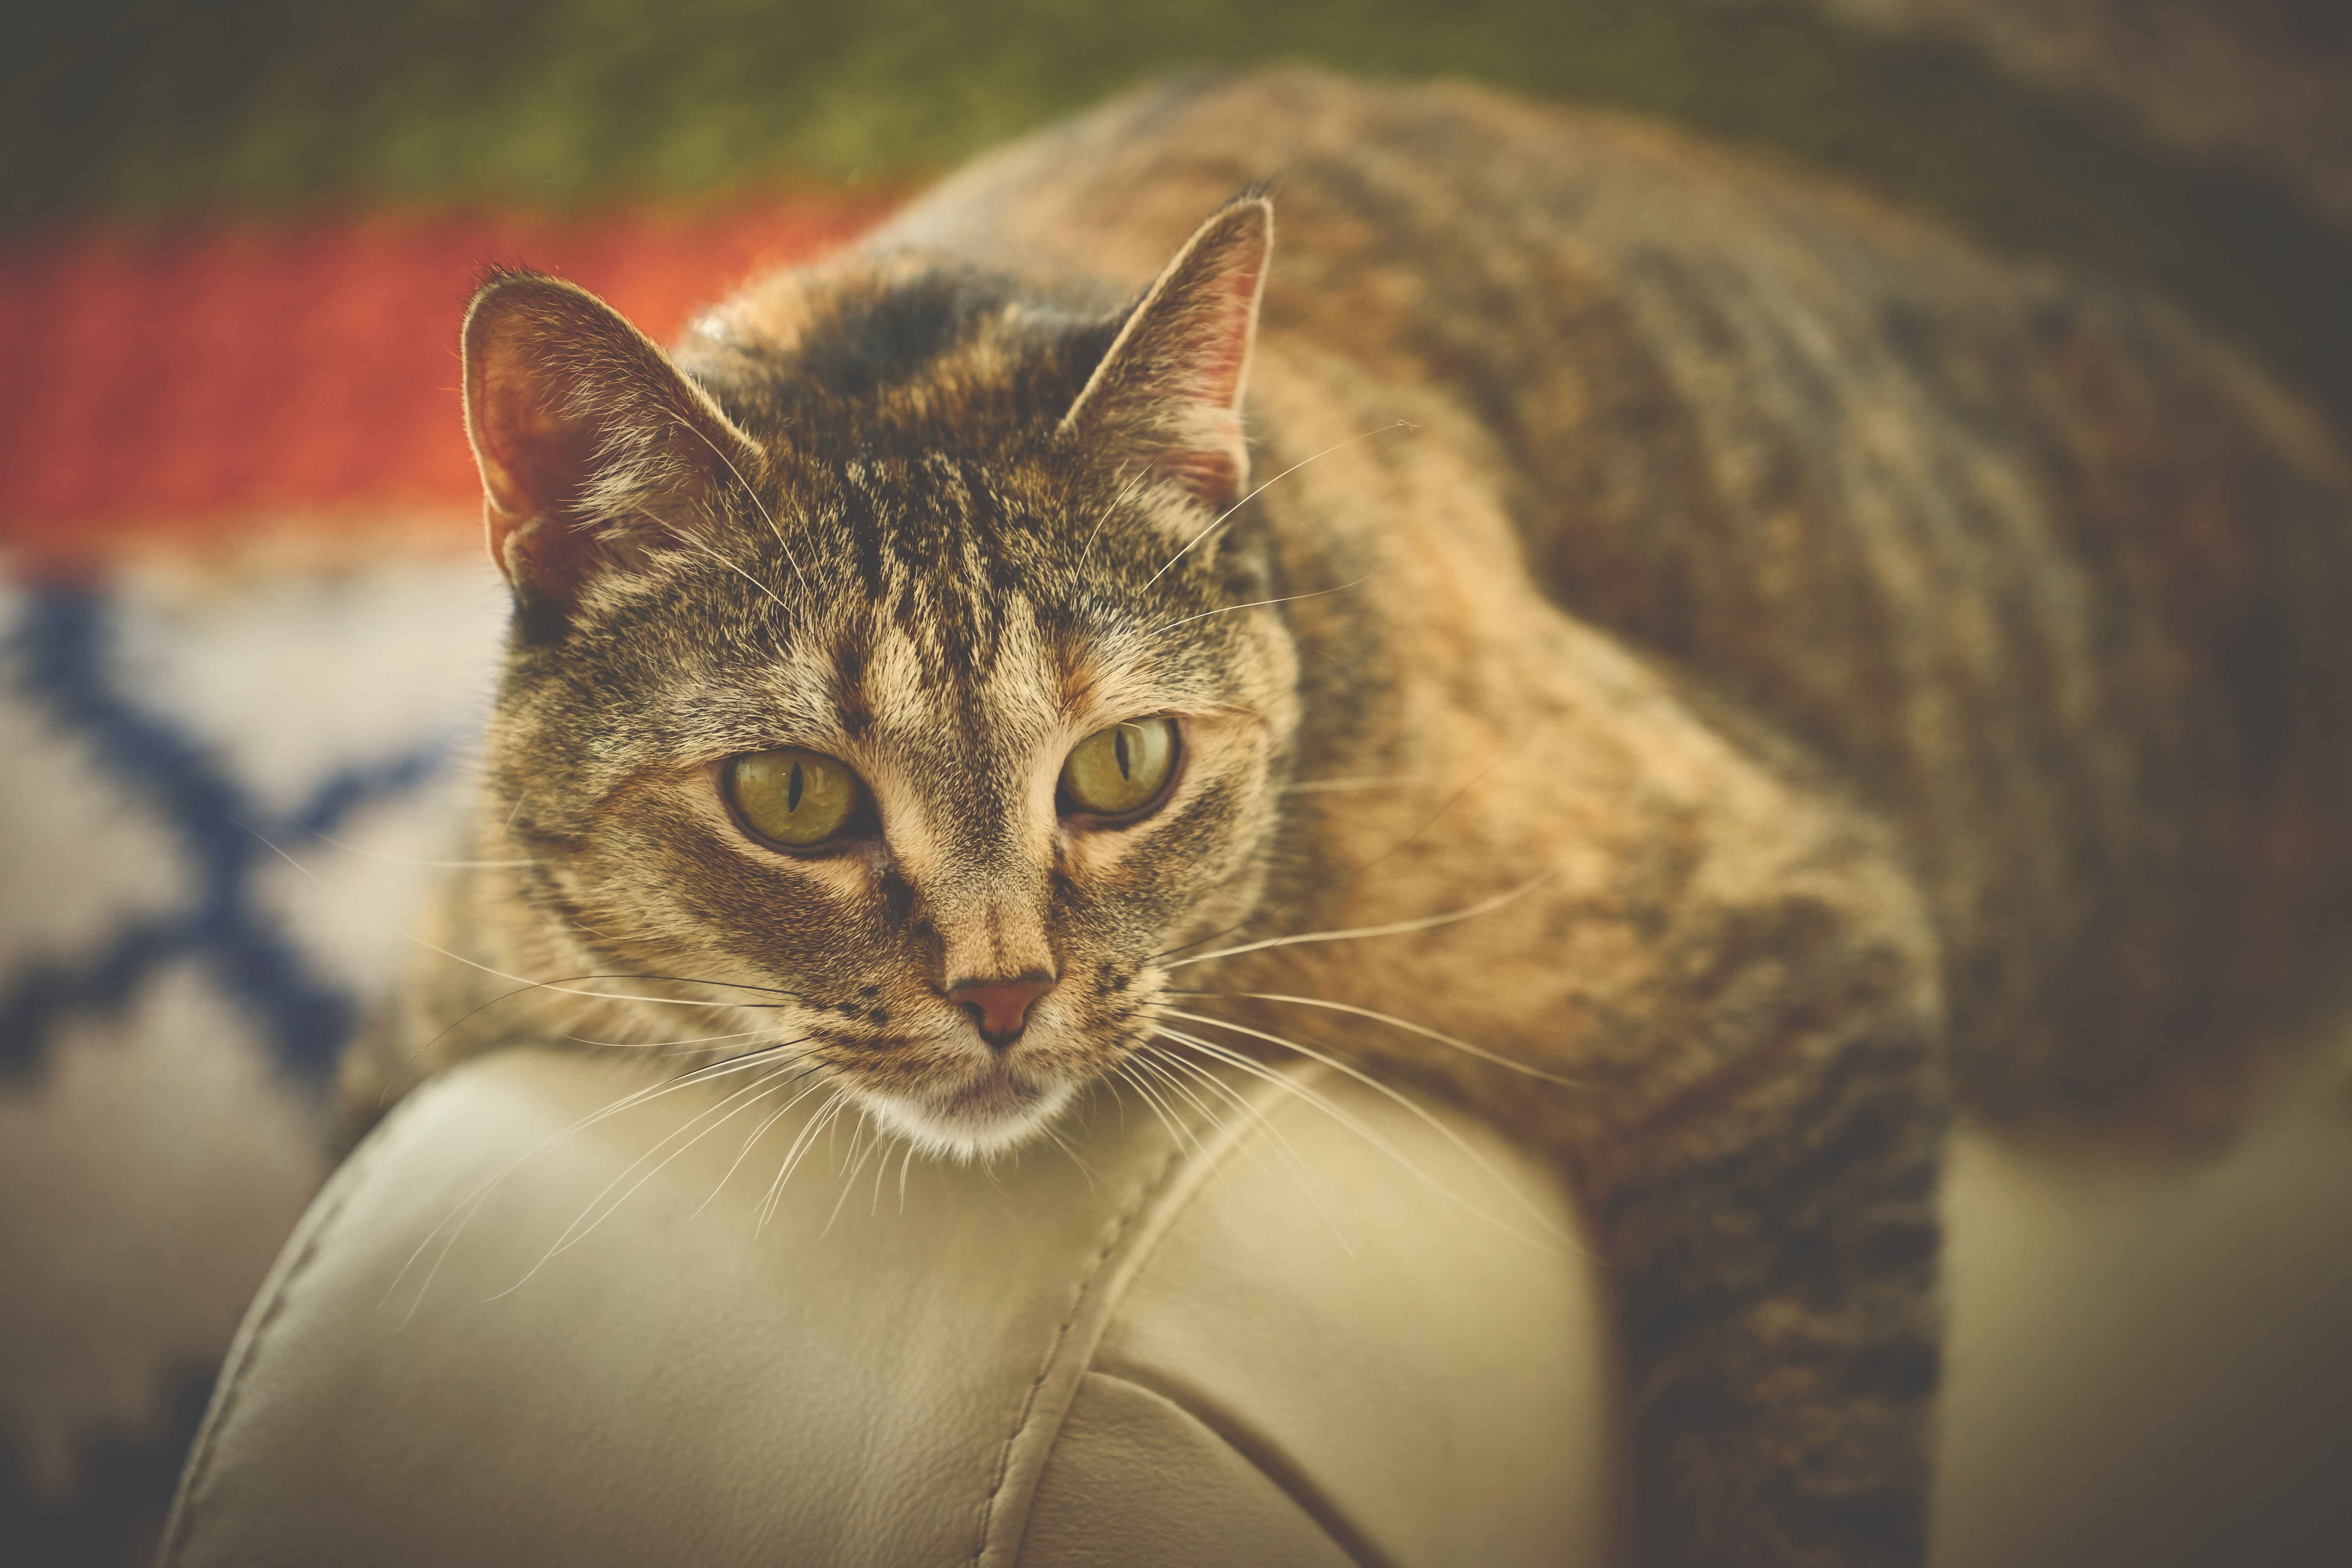 Brown Cat on Beige Leather Surface, Kitten, Young, Whiskers, Tabby, HQ Photo